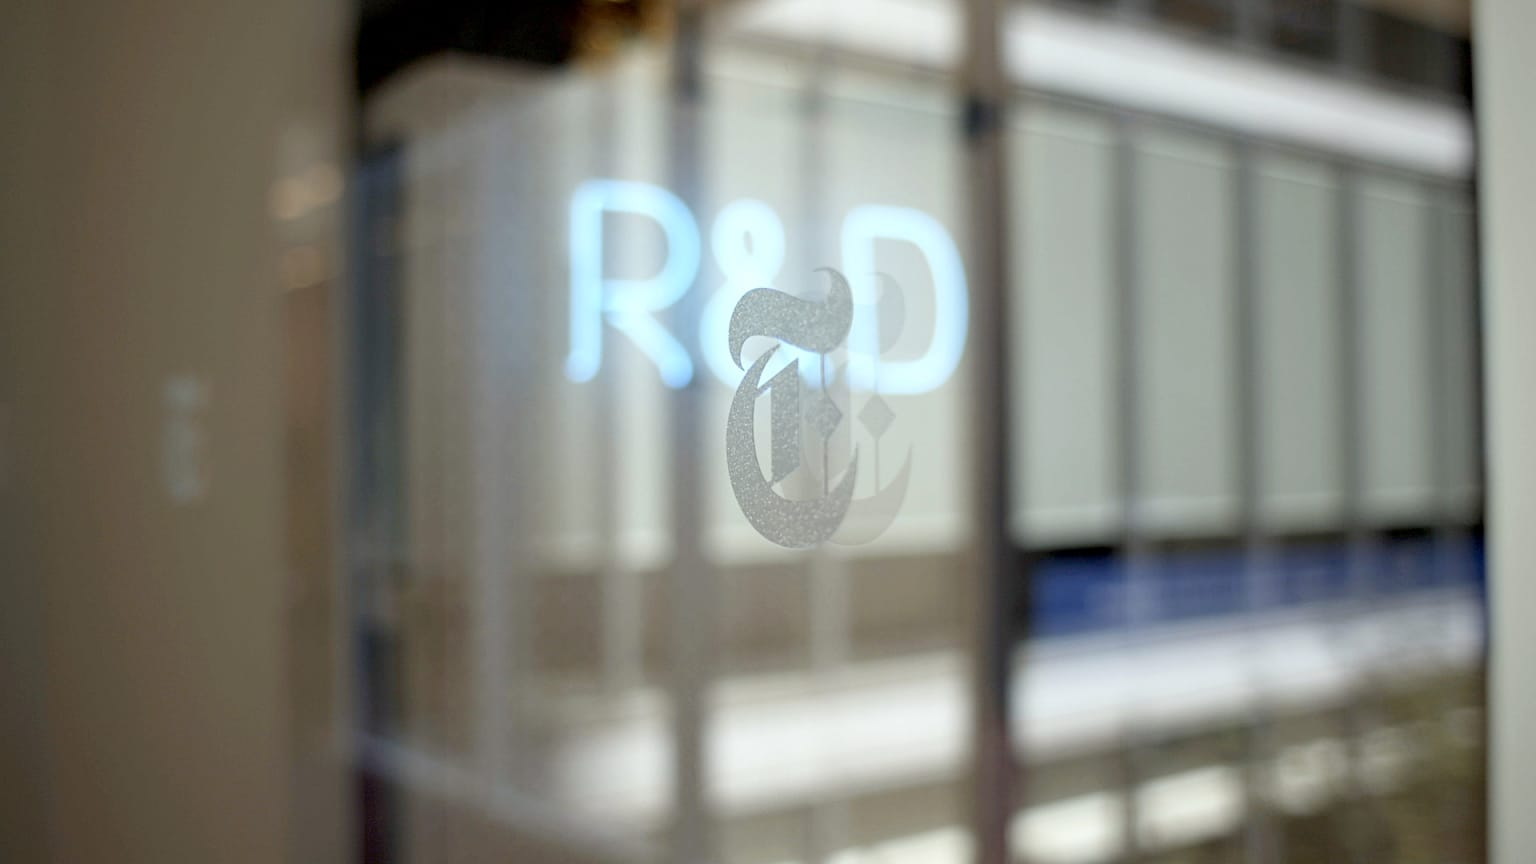 Rethinking Technology With the R&D Team at The New York Times